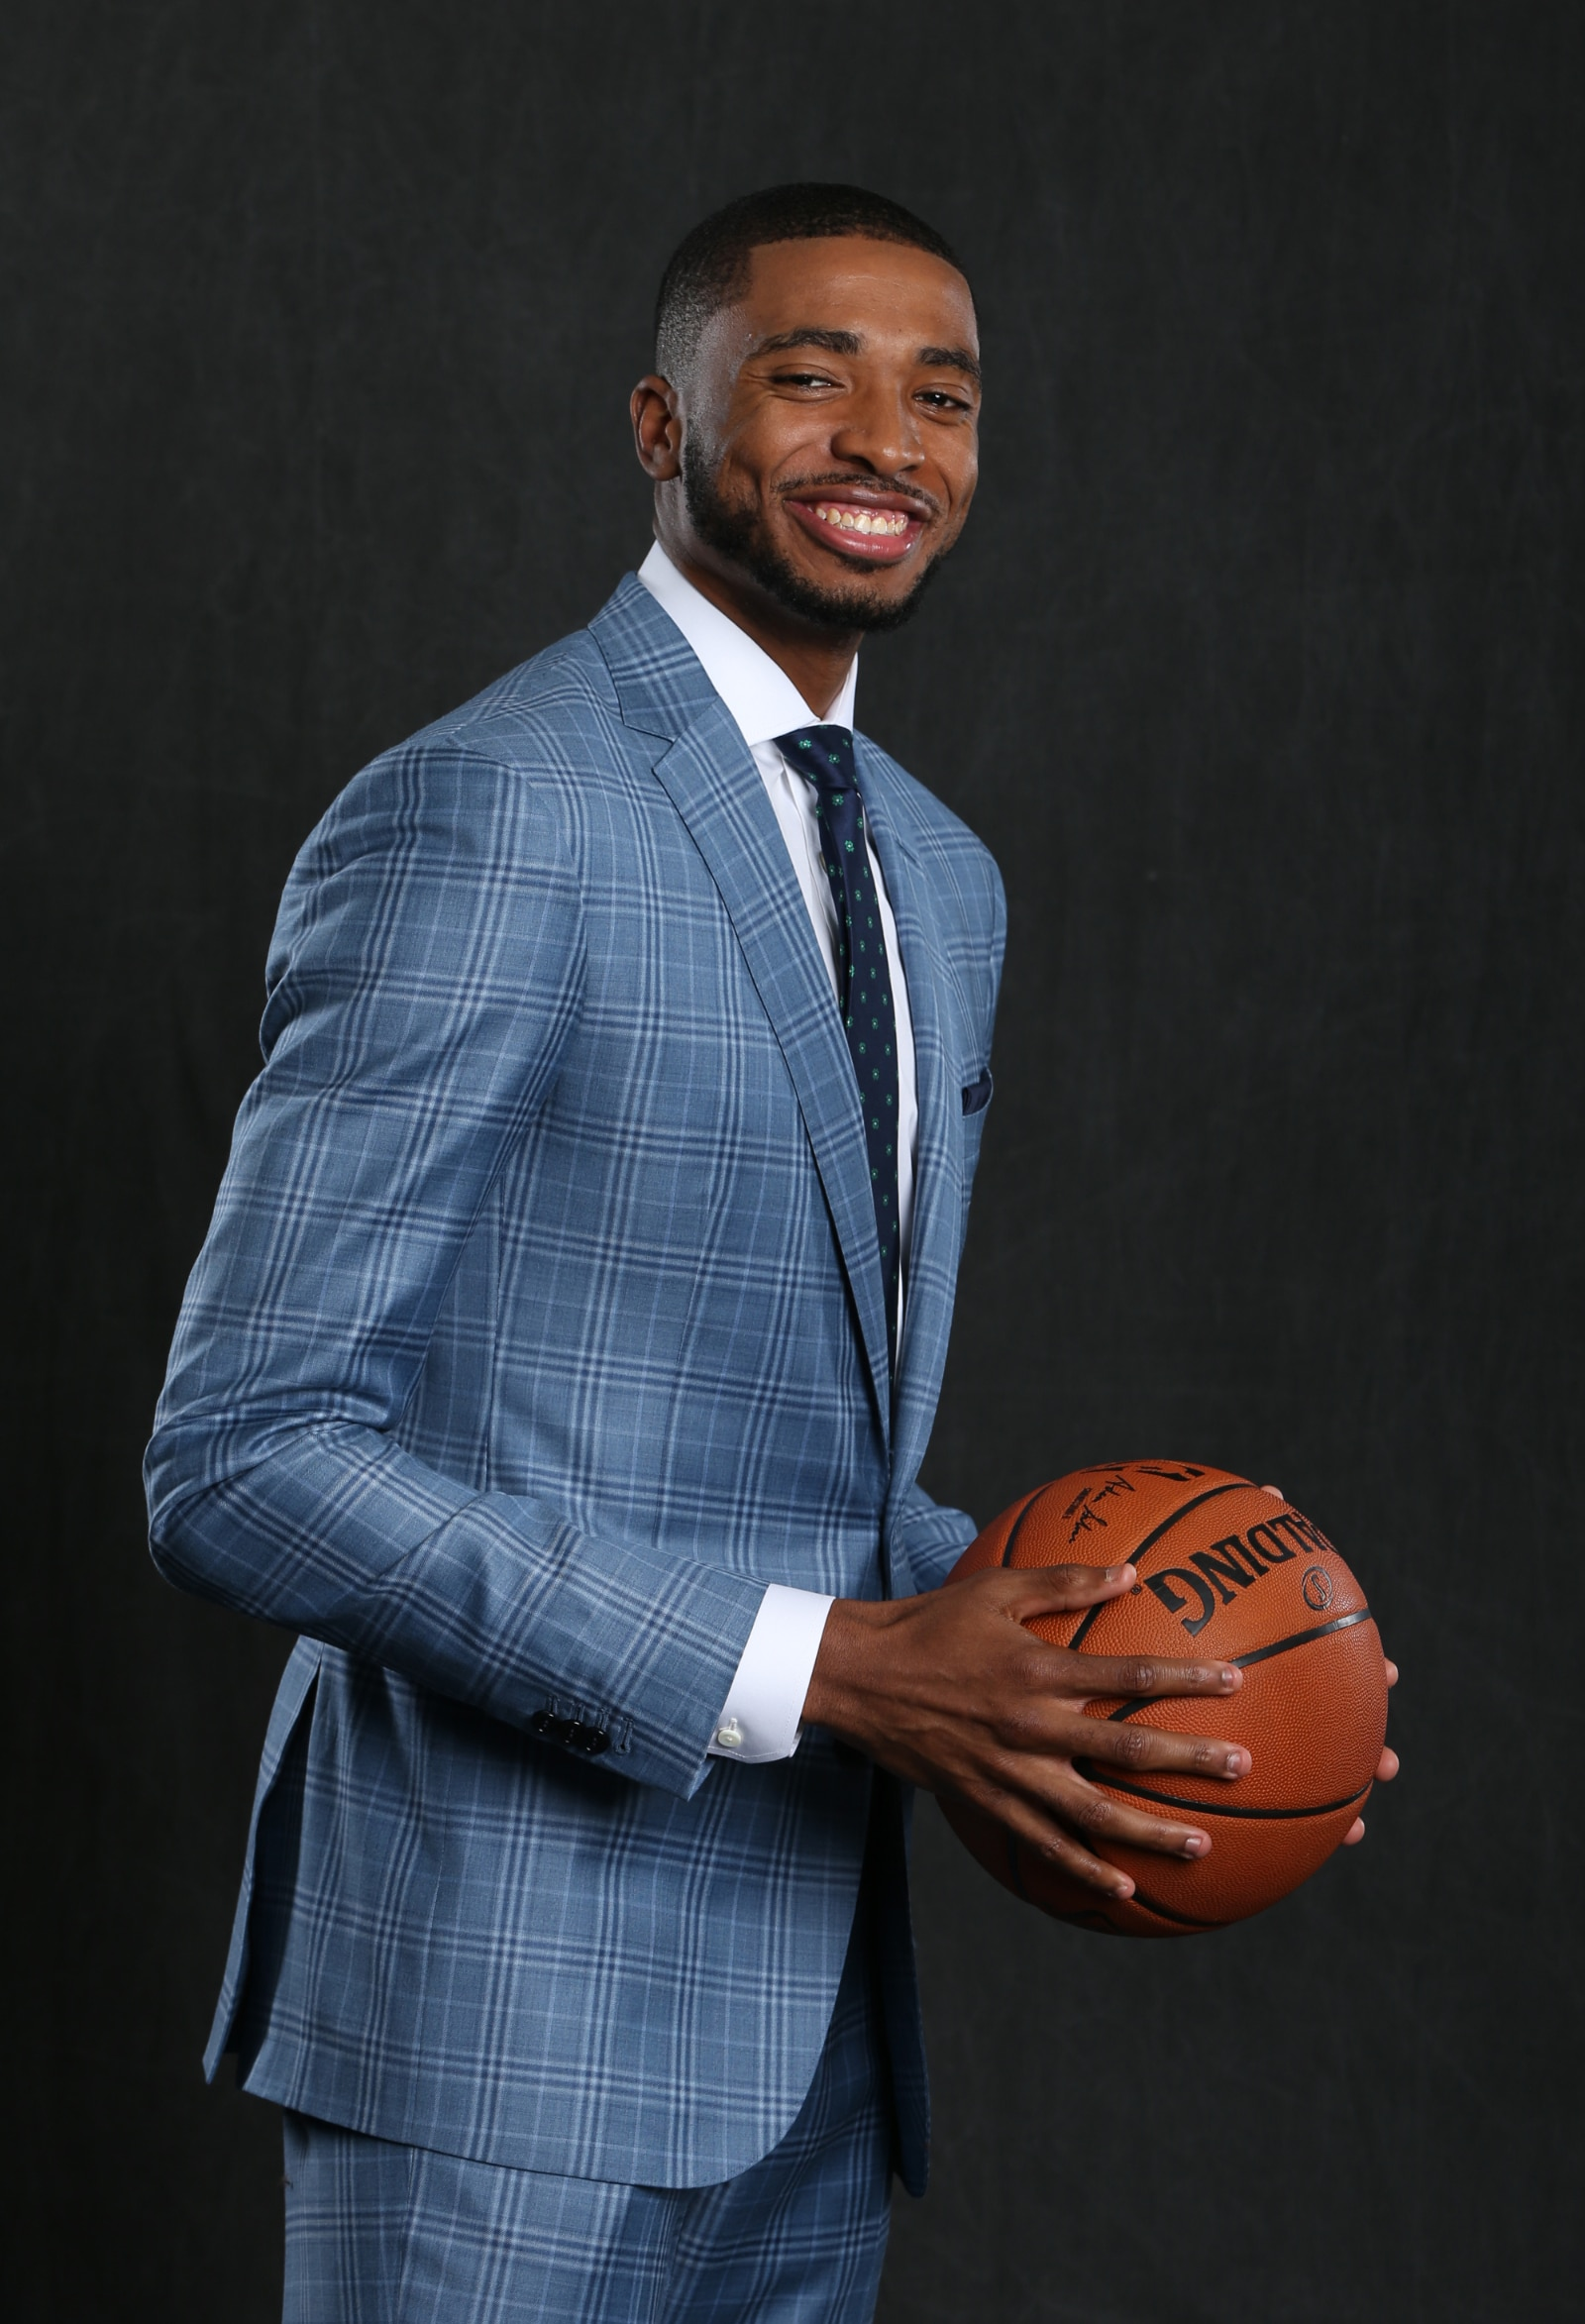 Mikal Bridges poses at the NBA Draft Lottery